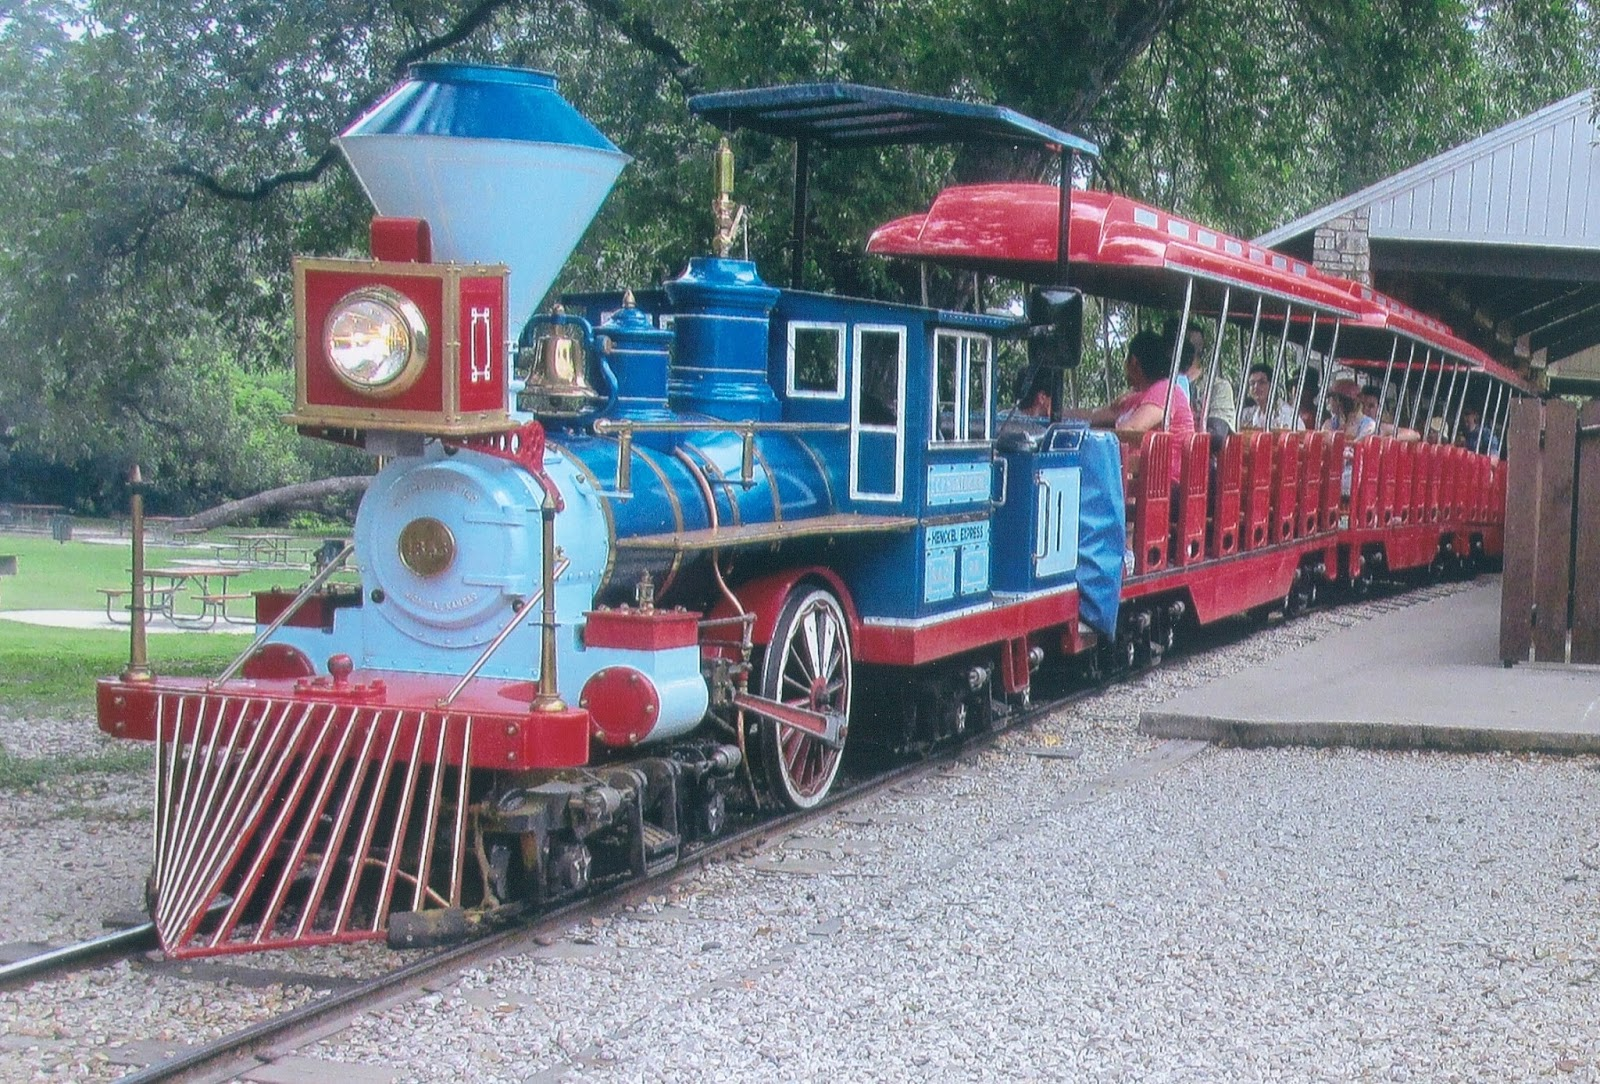 Eddie S Rail Fan Page The San Antonio Zoo Train San